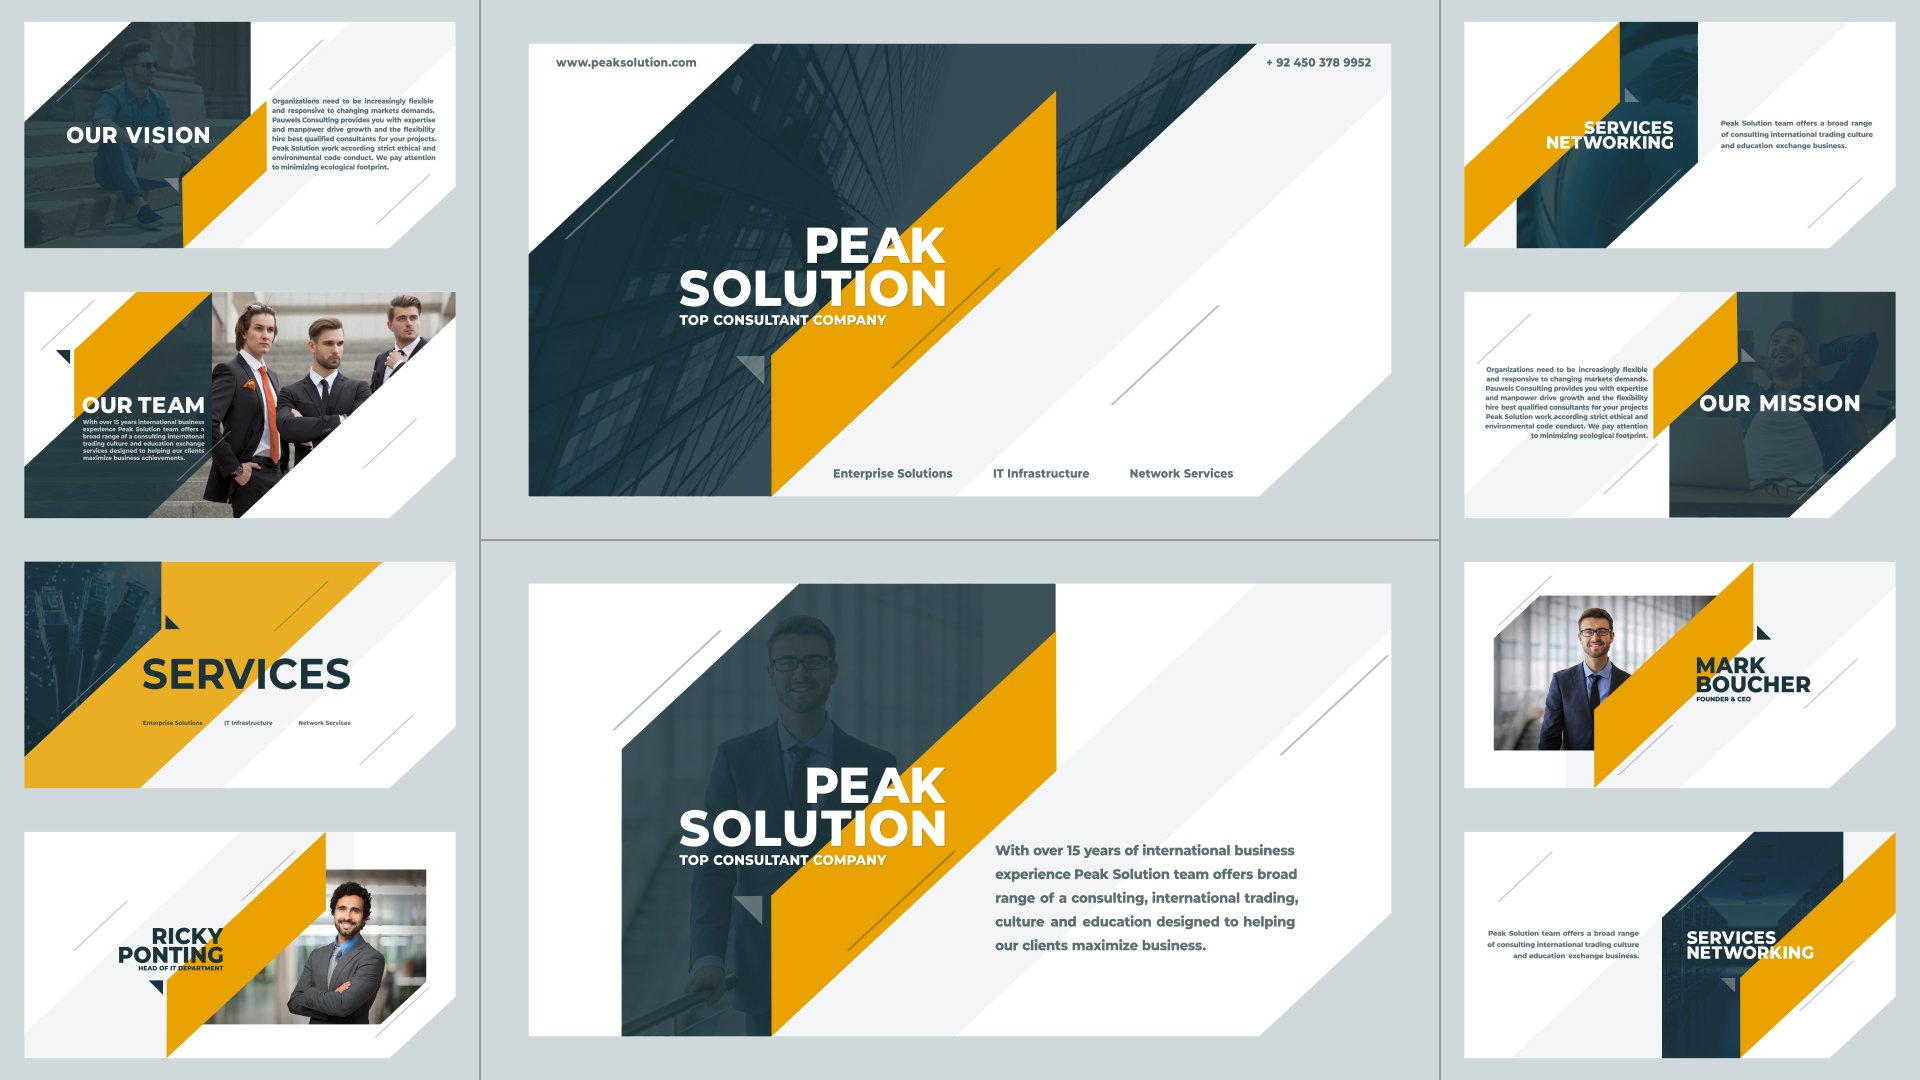 Corporate Presentation After Effects Template Pack 01 - Free